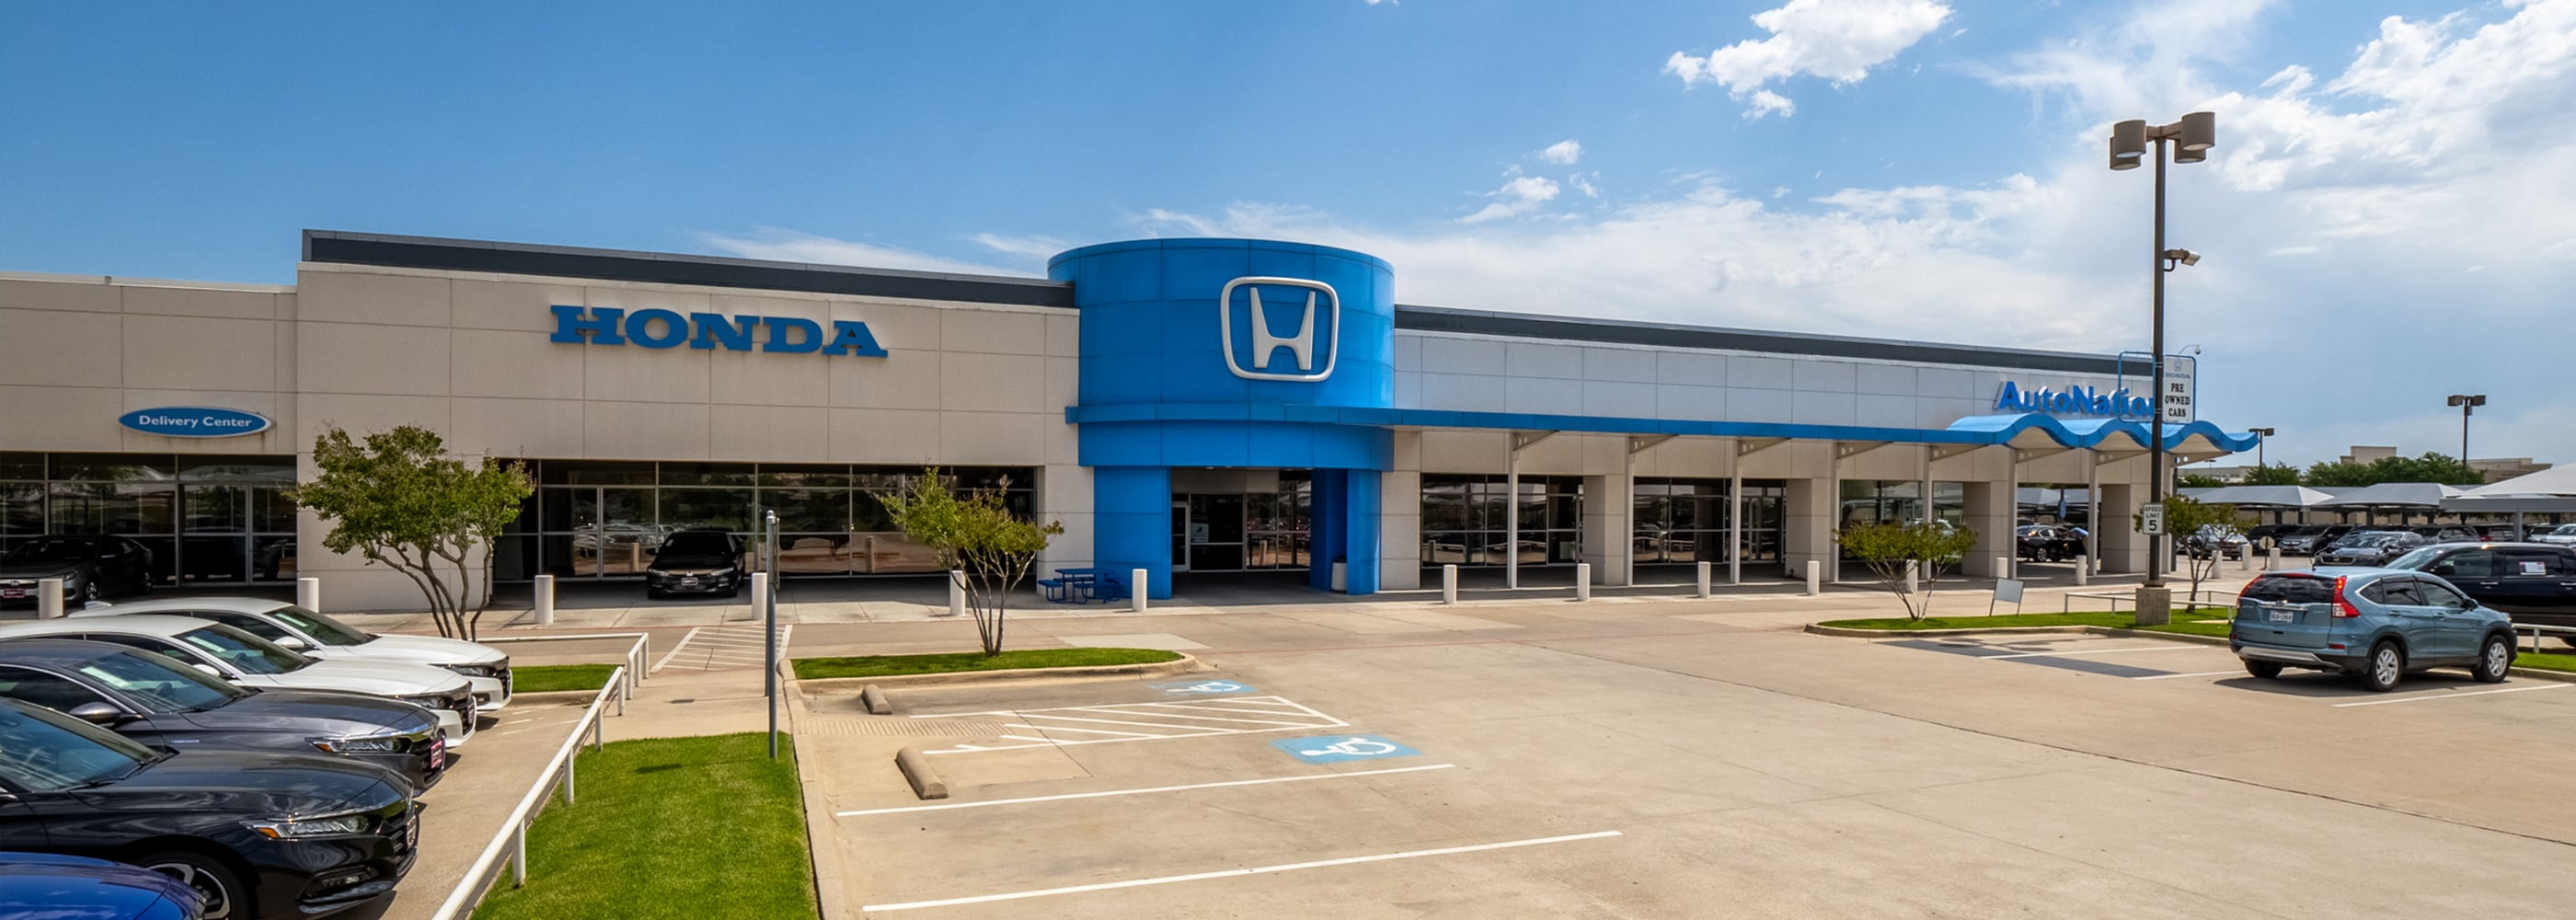 AutoNation Honda Lewisville offers sales, service, and parts in Lewisville